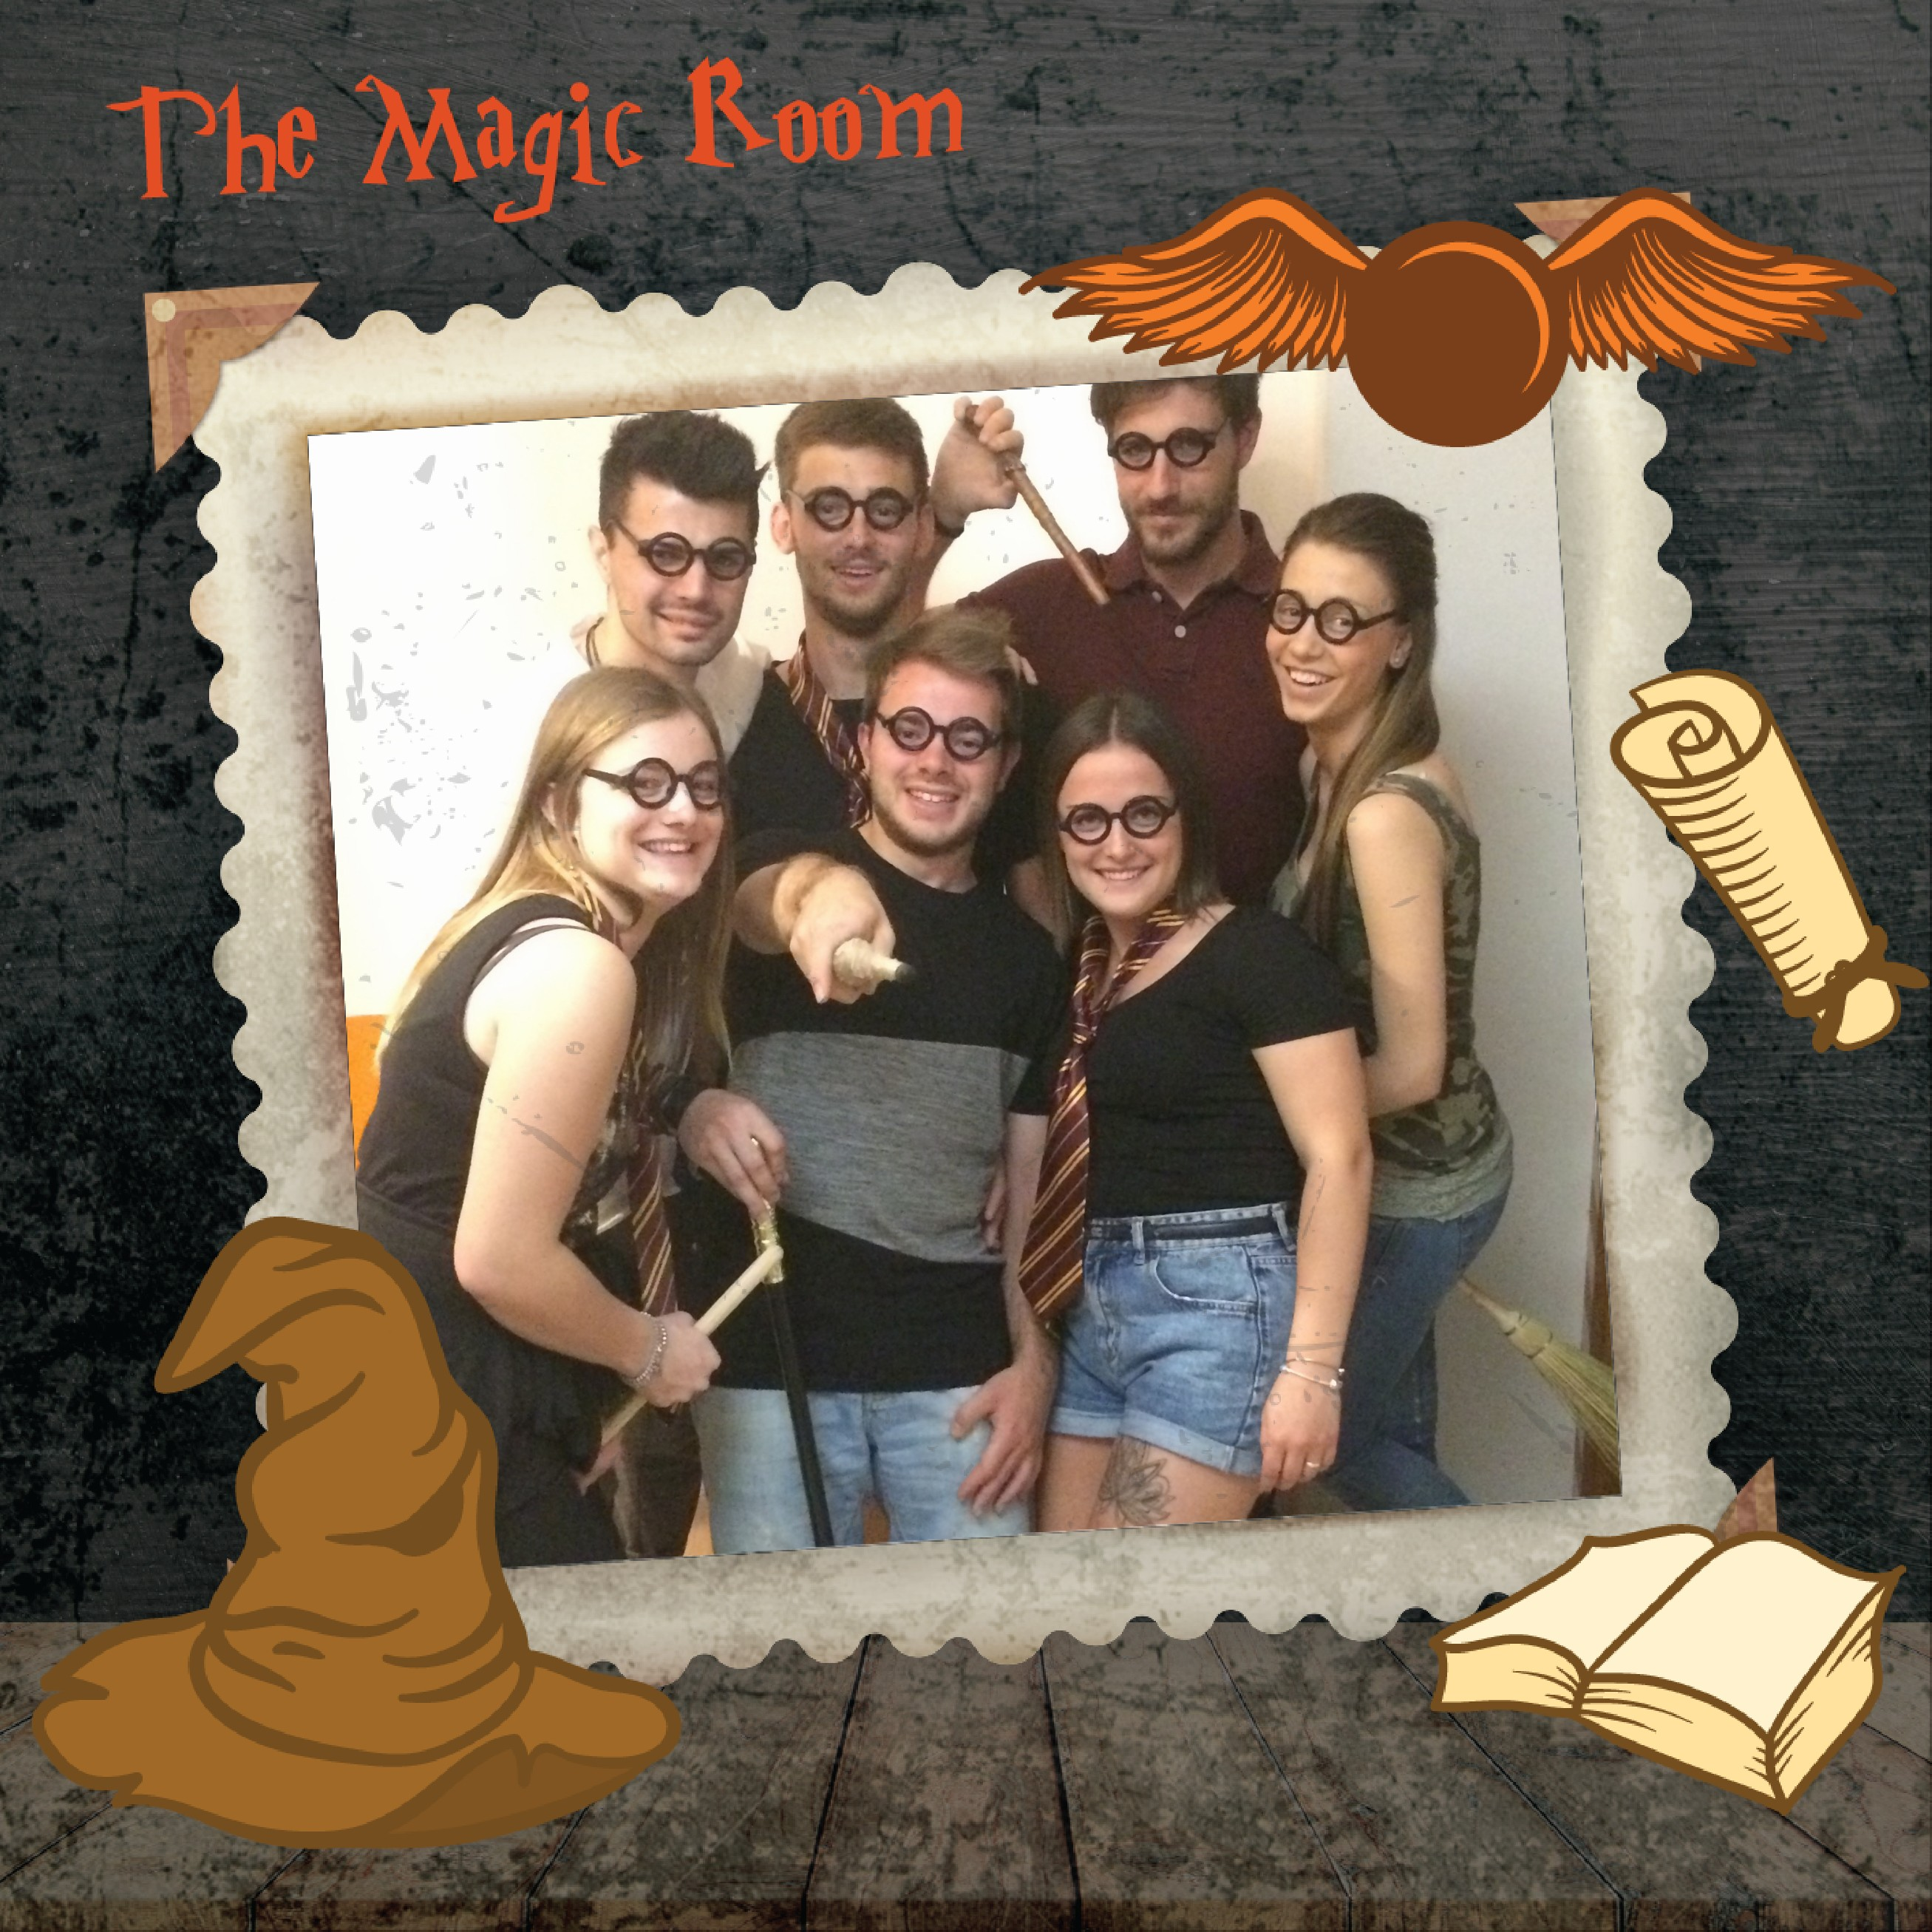 Squadra VASCO MACCAN CHRISTOPHER BURIOLA ARMAND  XUNA SELDA KAZAZI VANESSA GUBITTA ELENA PANTAROTTO DAVIDE BATTISTELLA - OUT! Escape Room a Udine